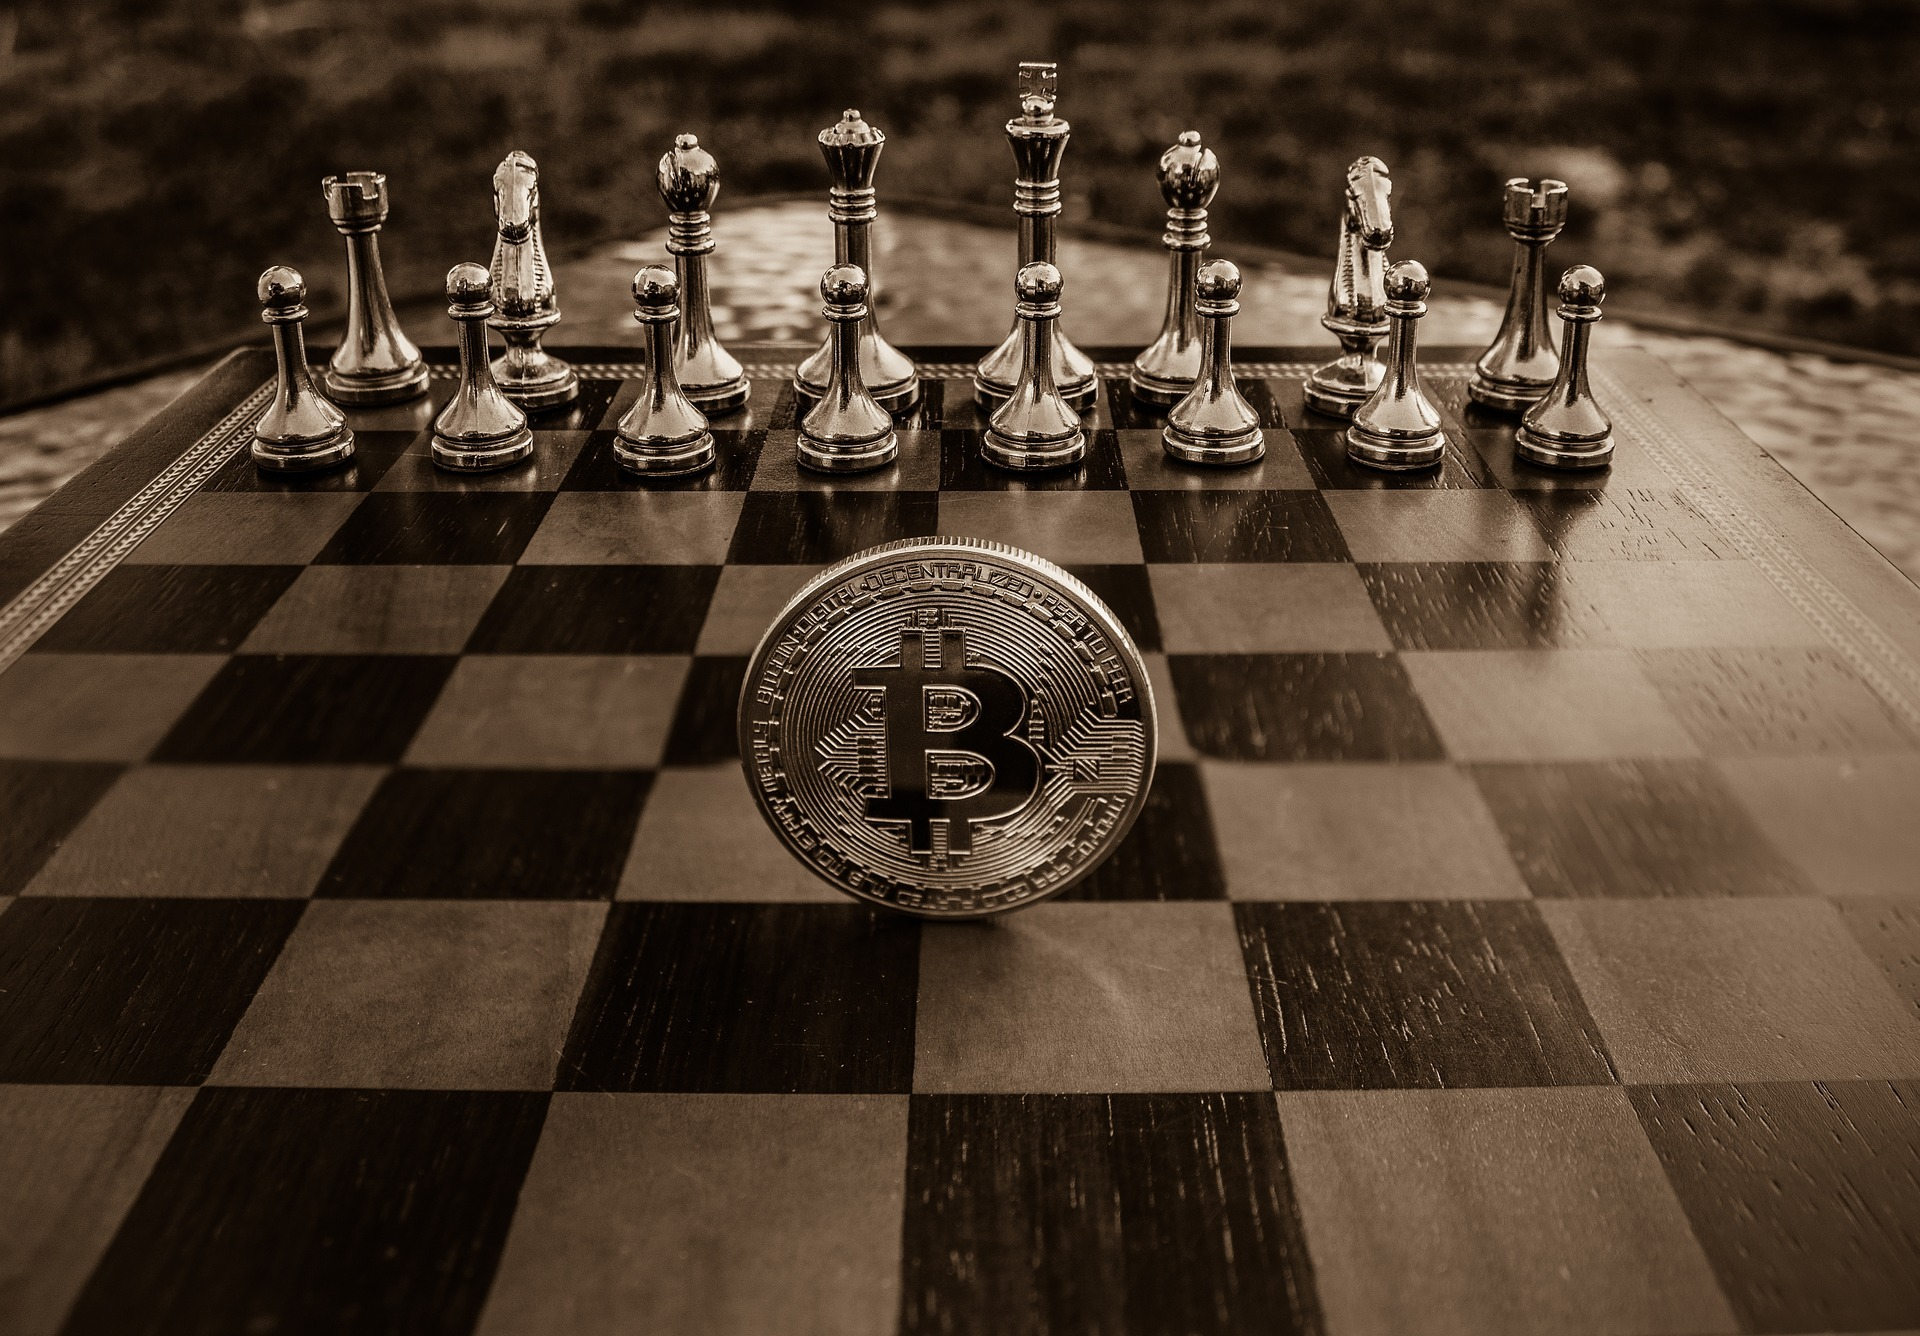 Bitcoin Supply Crisis Will Force Price Higher, Says Max Keiser